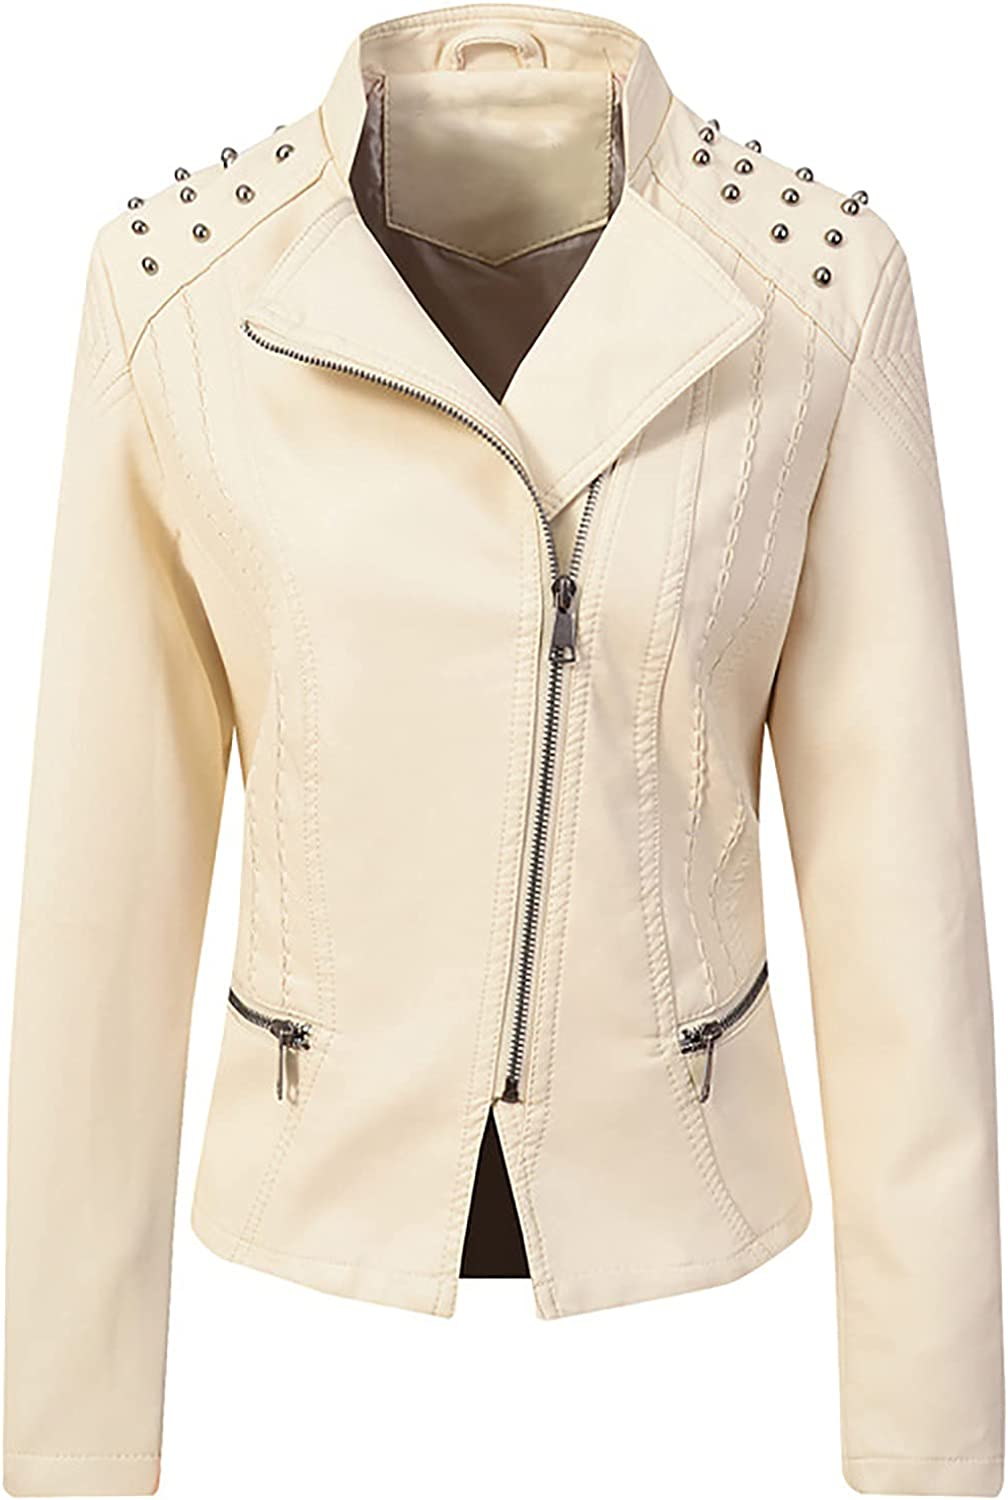 Women Faux Leather Bomber Jacket Solid Color Stand-up Zipper Coat Casual Long Sleeve Rivet Outerwear Moto Pocket Tops